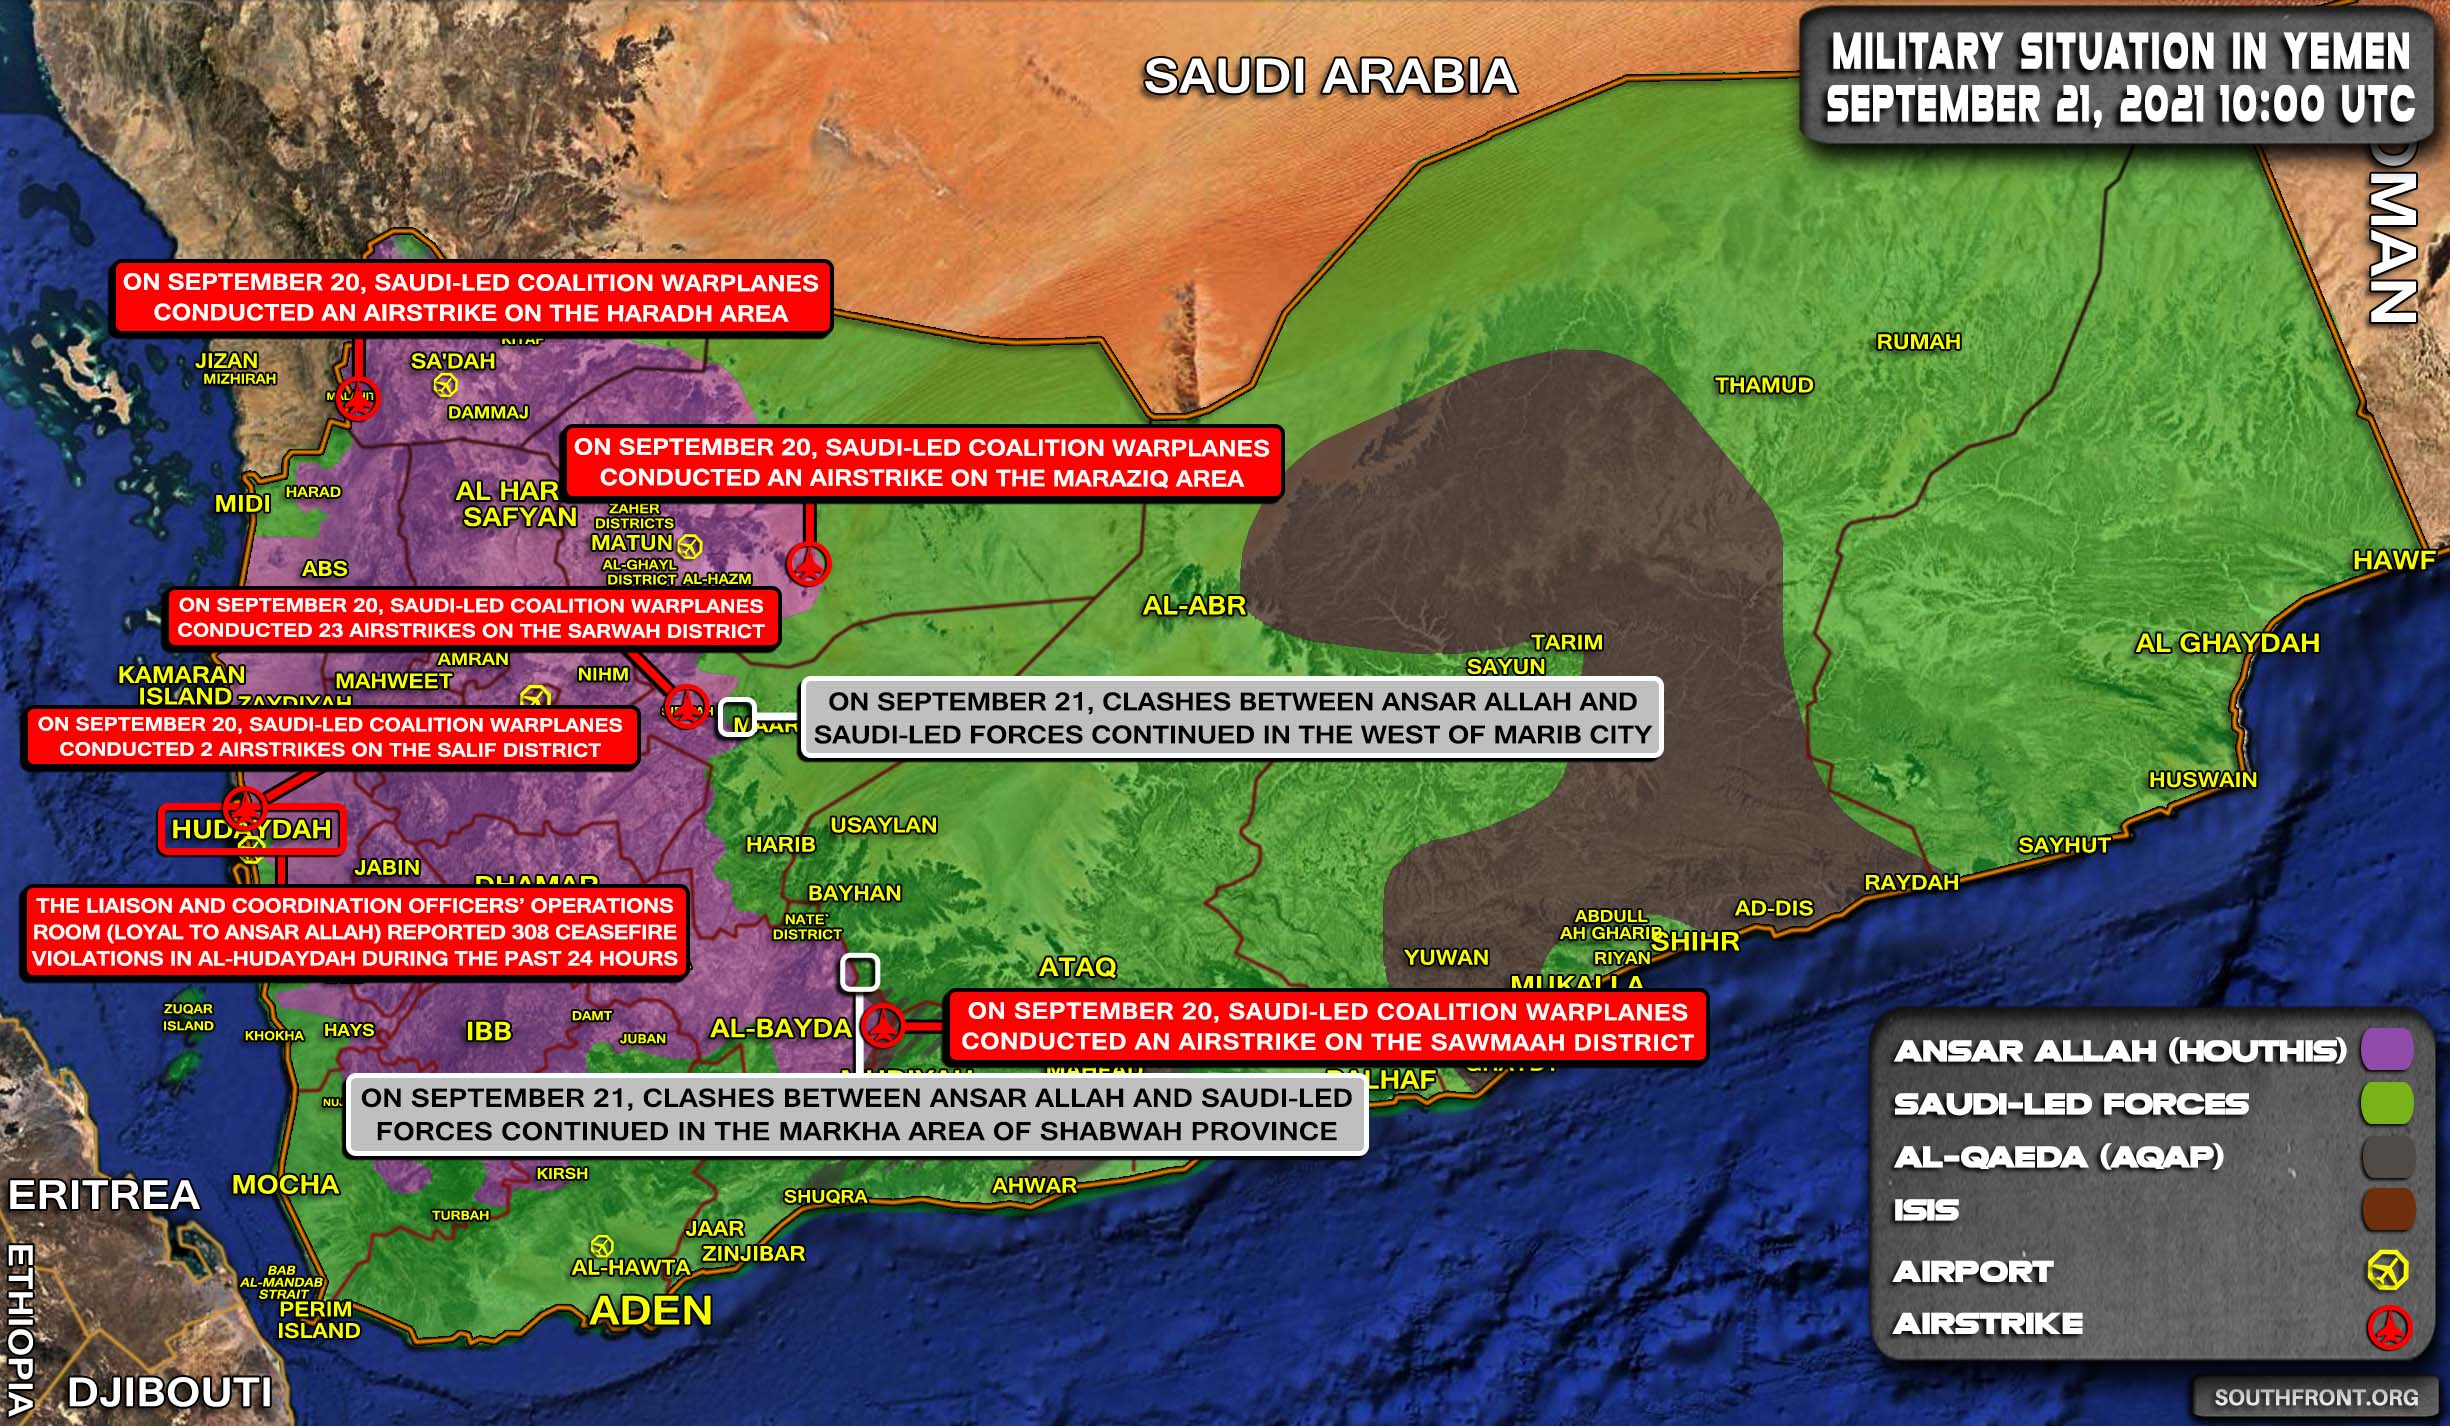 Military Situation In Yemen On September 21, 2021 (Map Update)